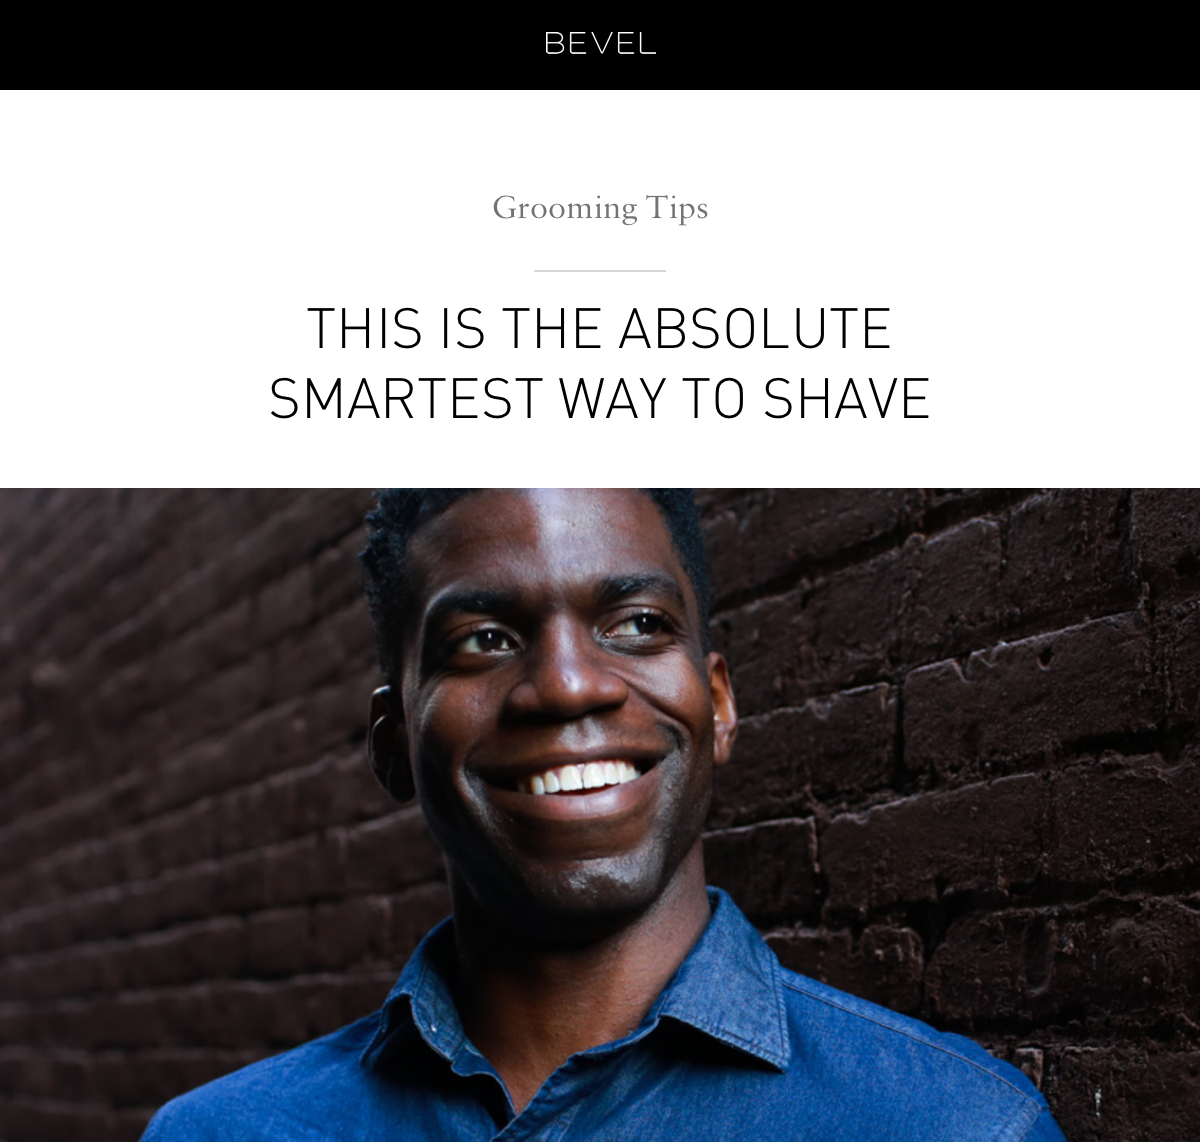 This Is The Absolute Smartest Way To Shave